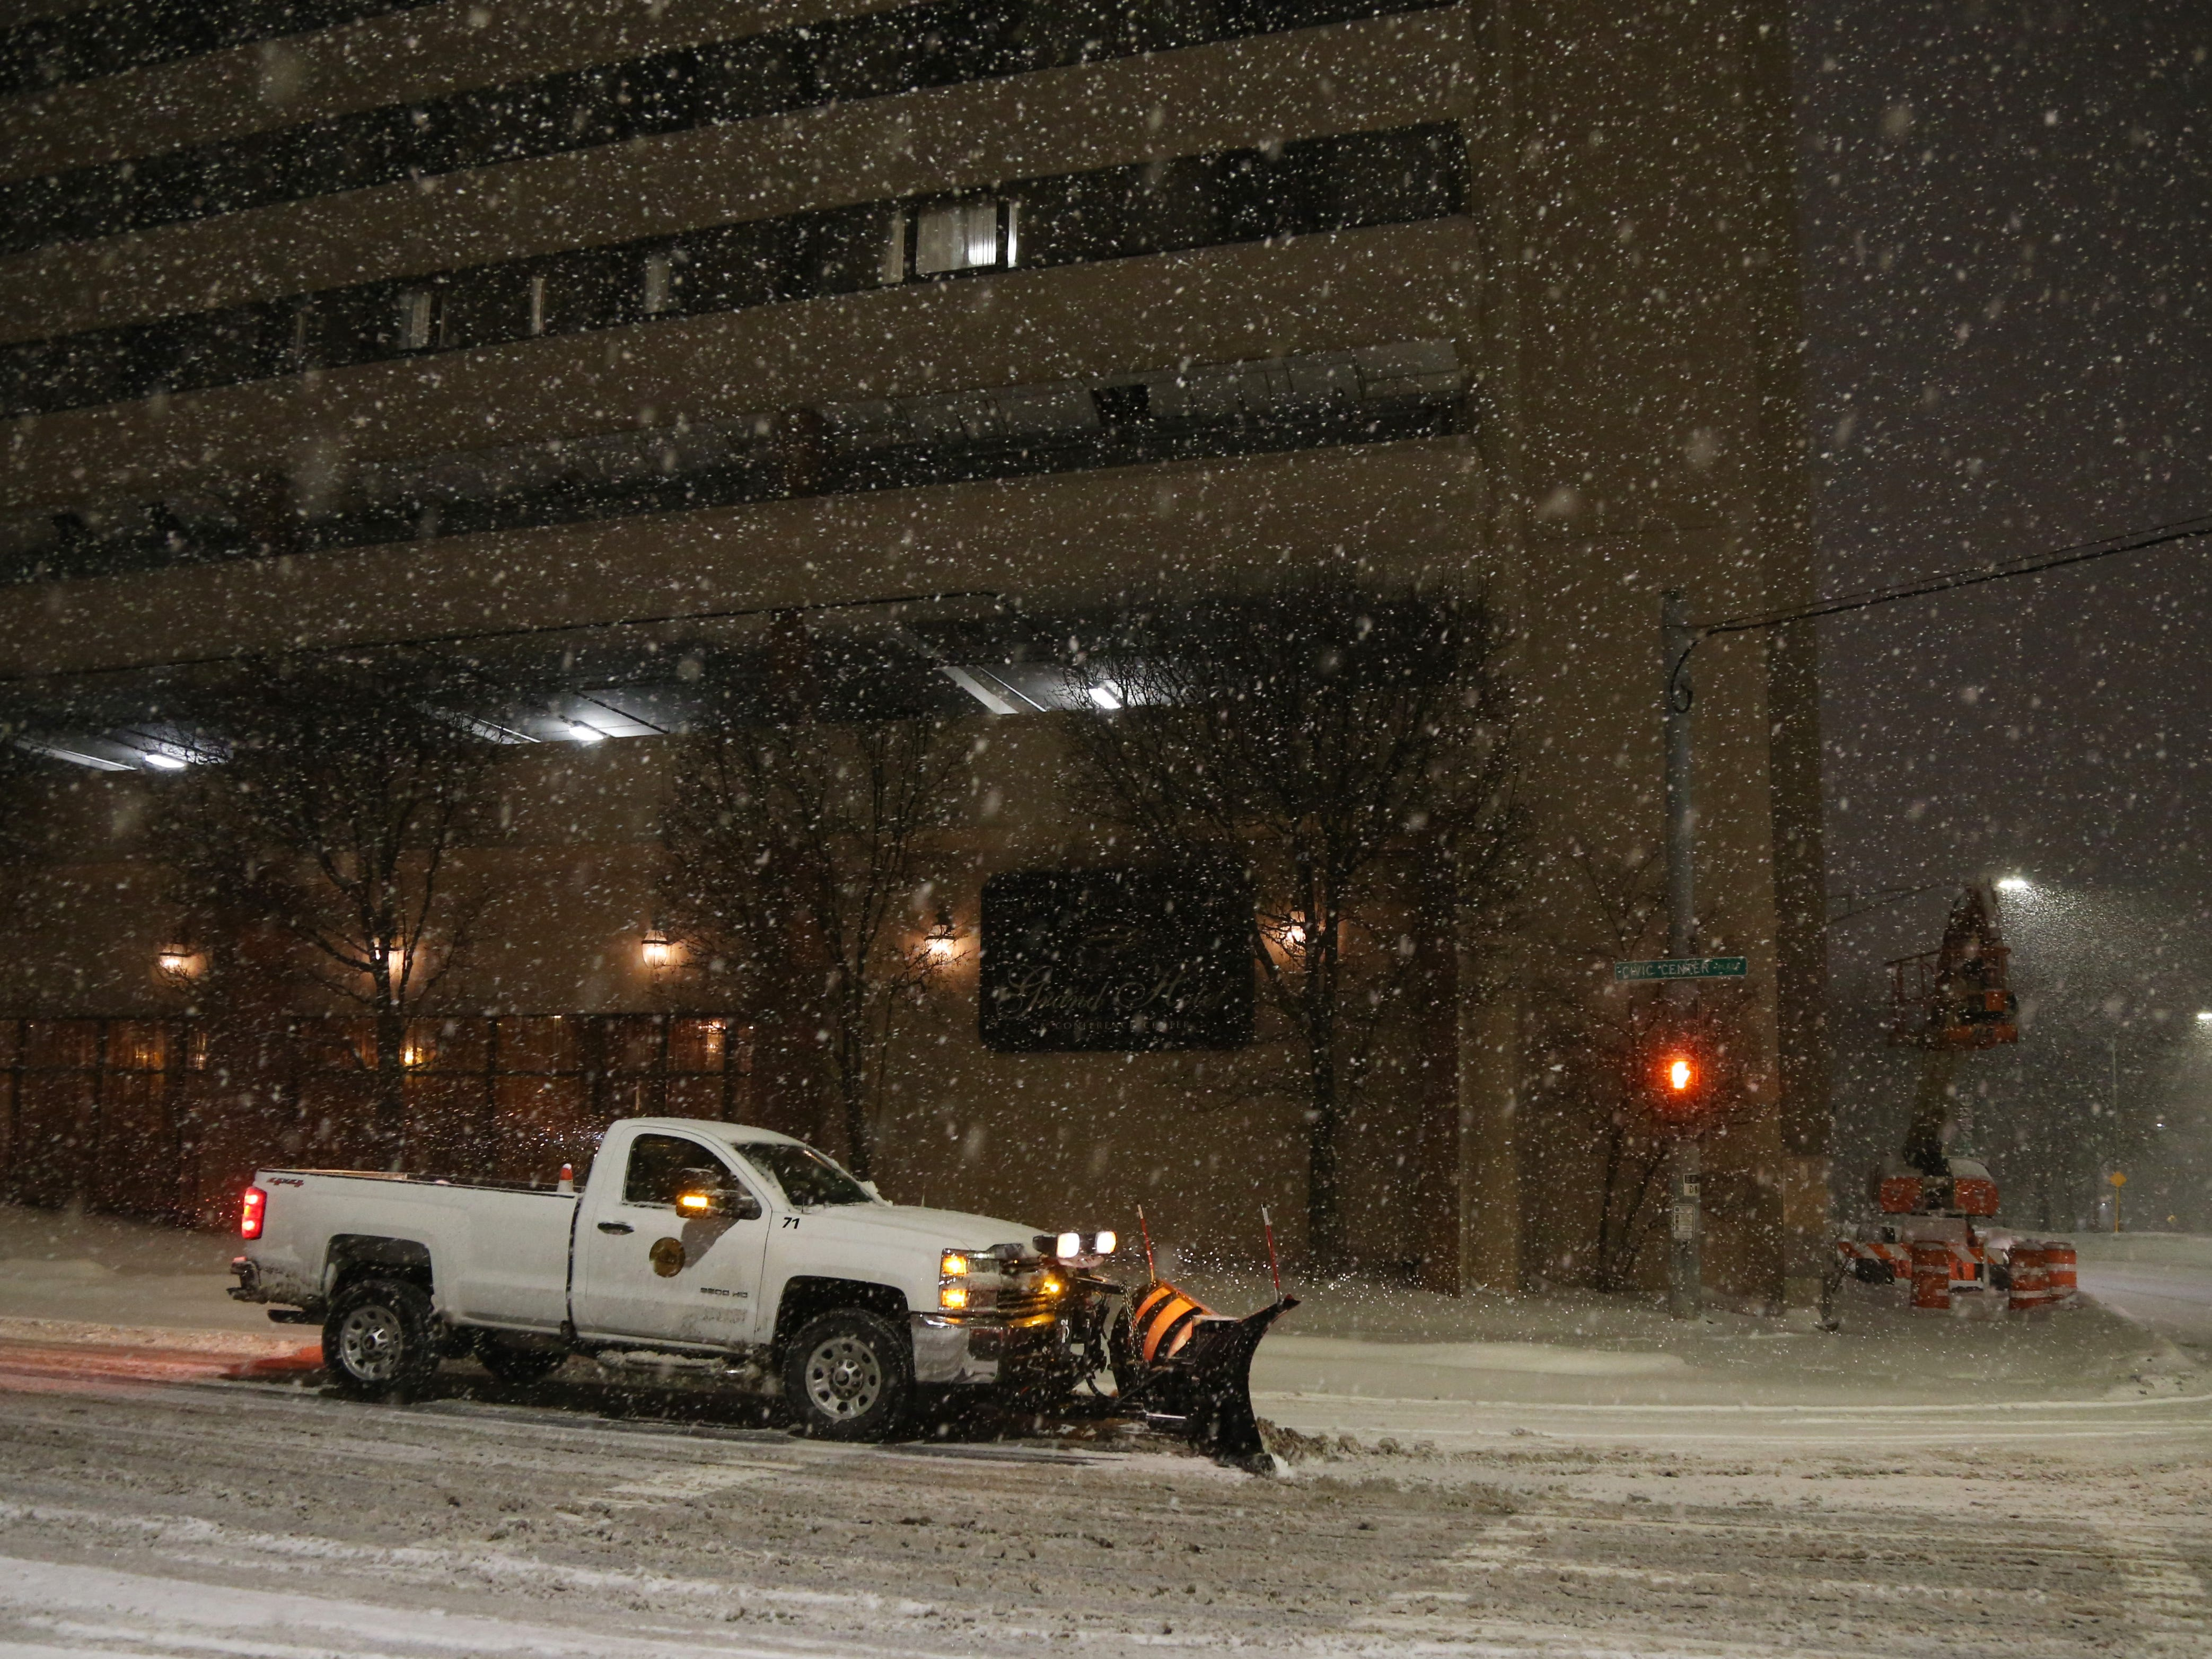 A City of Poughkeepsie maintenance truck with a plow stopped at Civic Center Plaza and the westbound arterial in the City of Poughkeepsie on January 29, 2019.